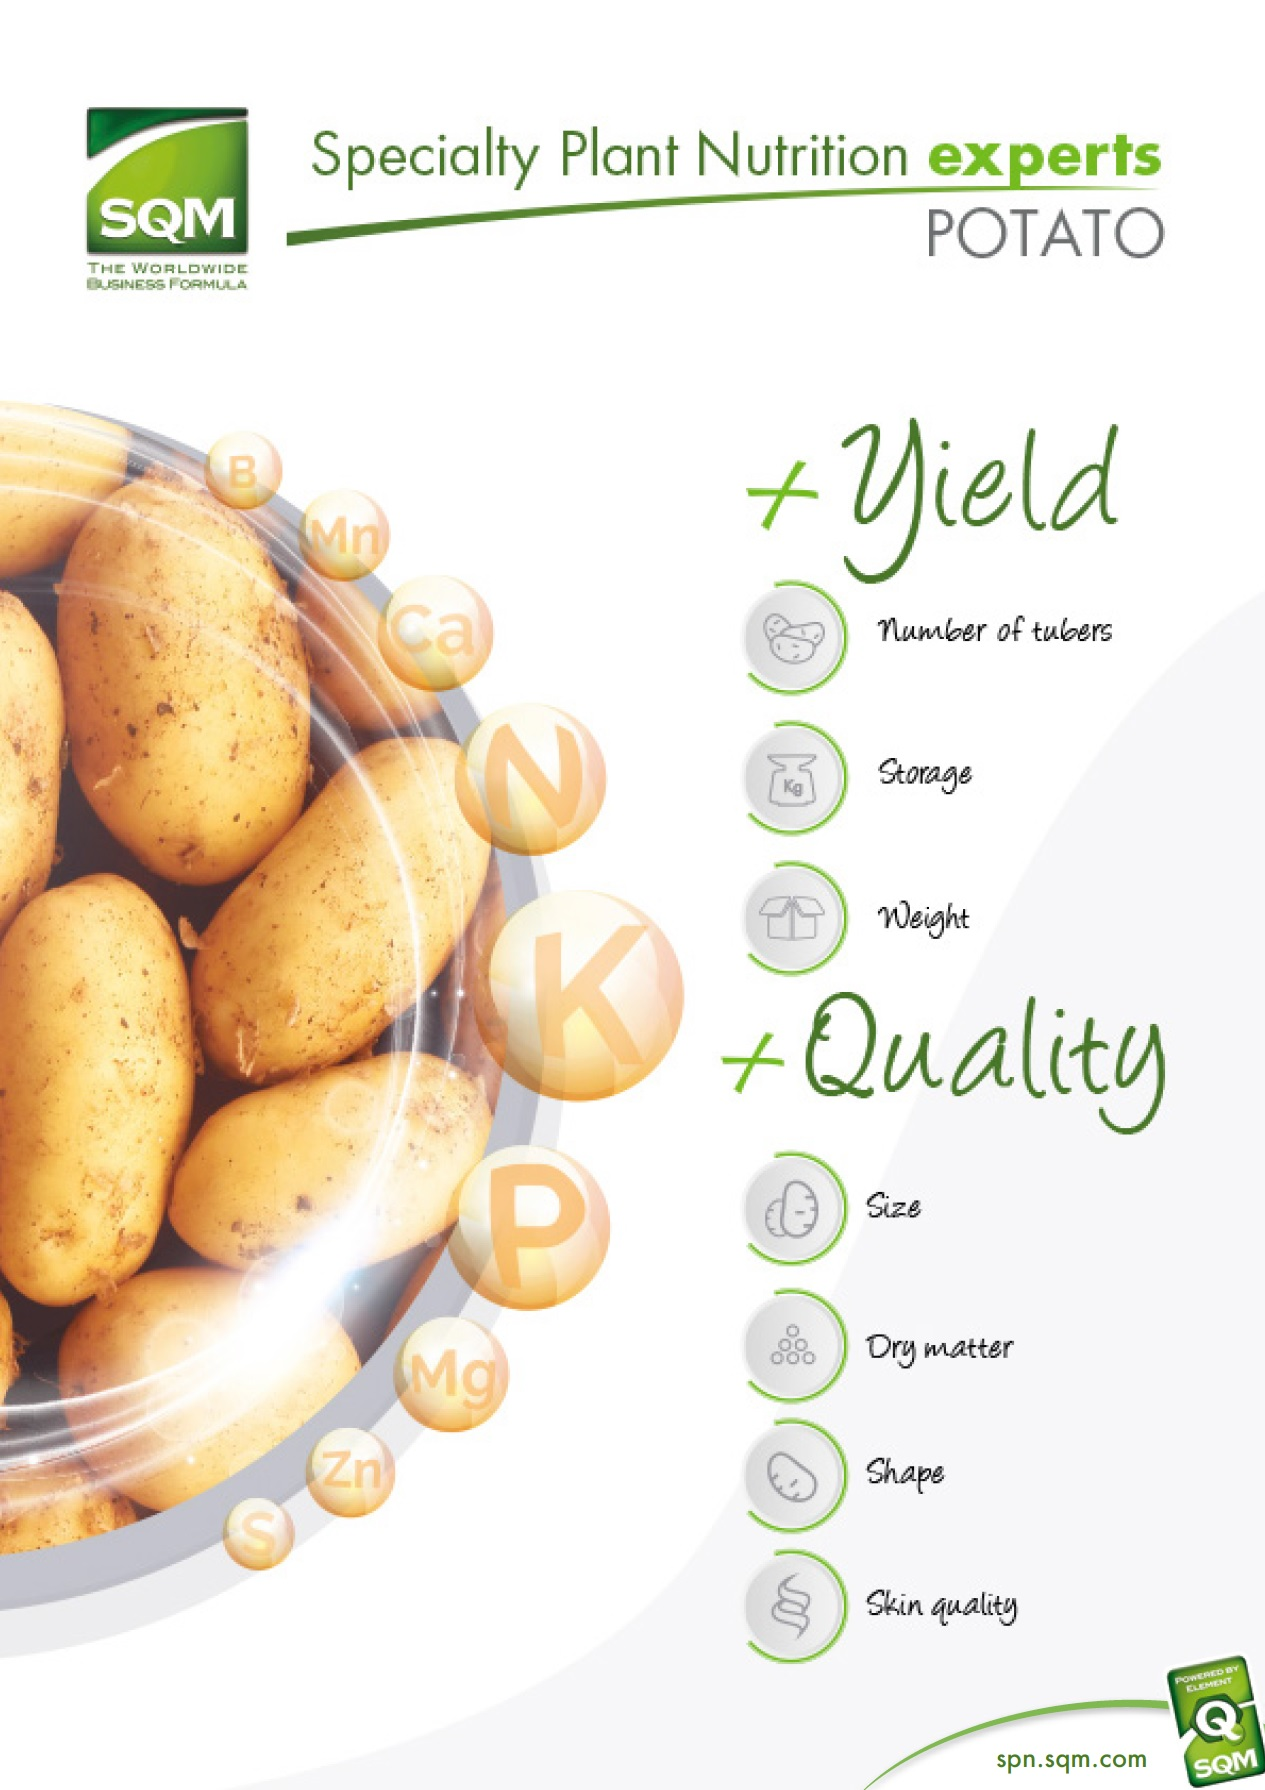 Specialty Plant Nutrition experts: Potato